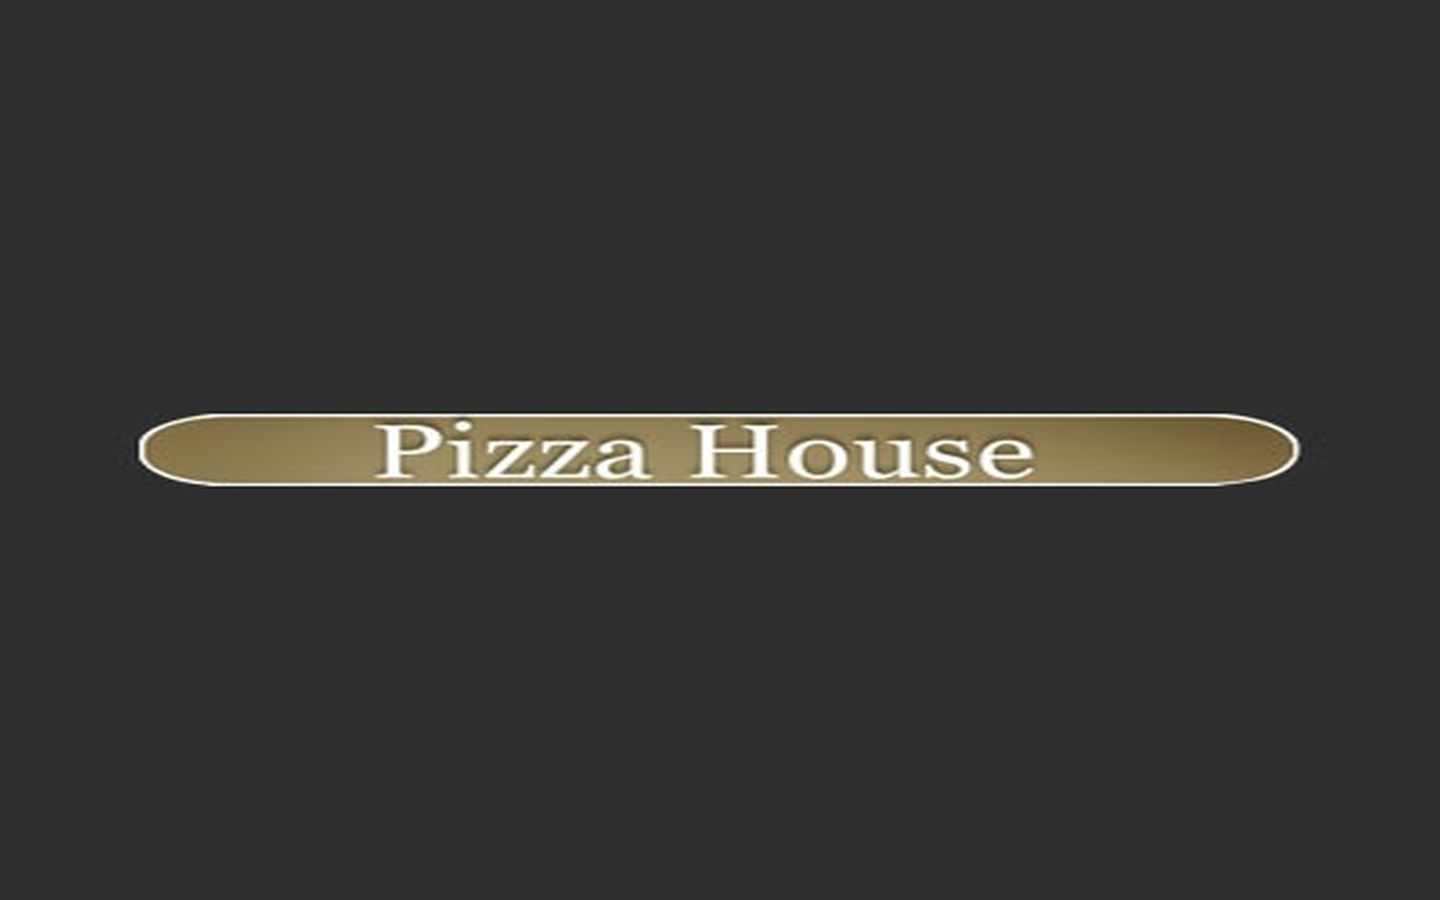 Pizza House, Pittsfield MA